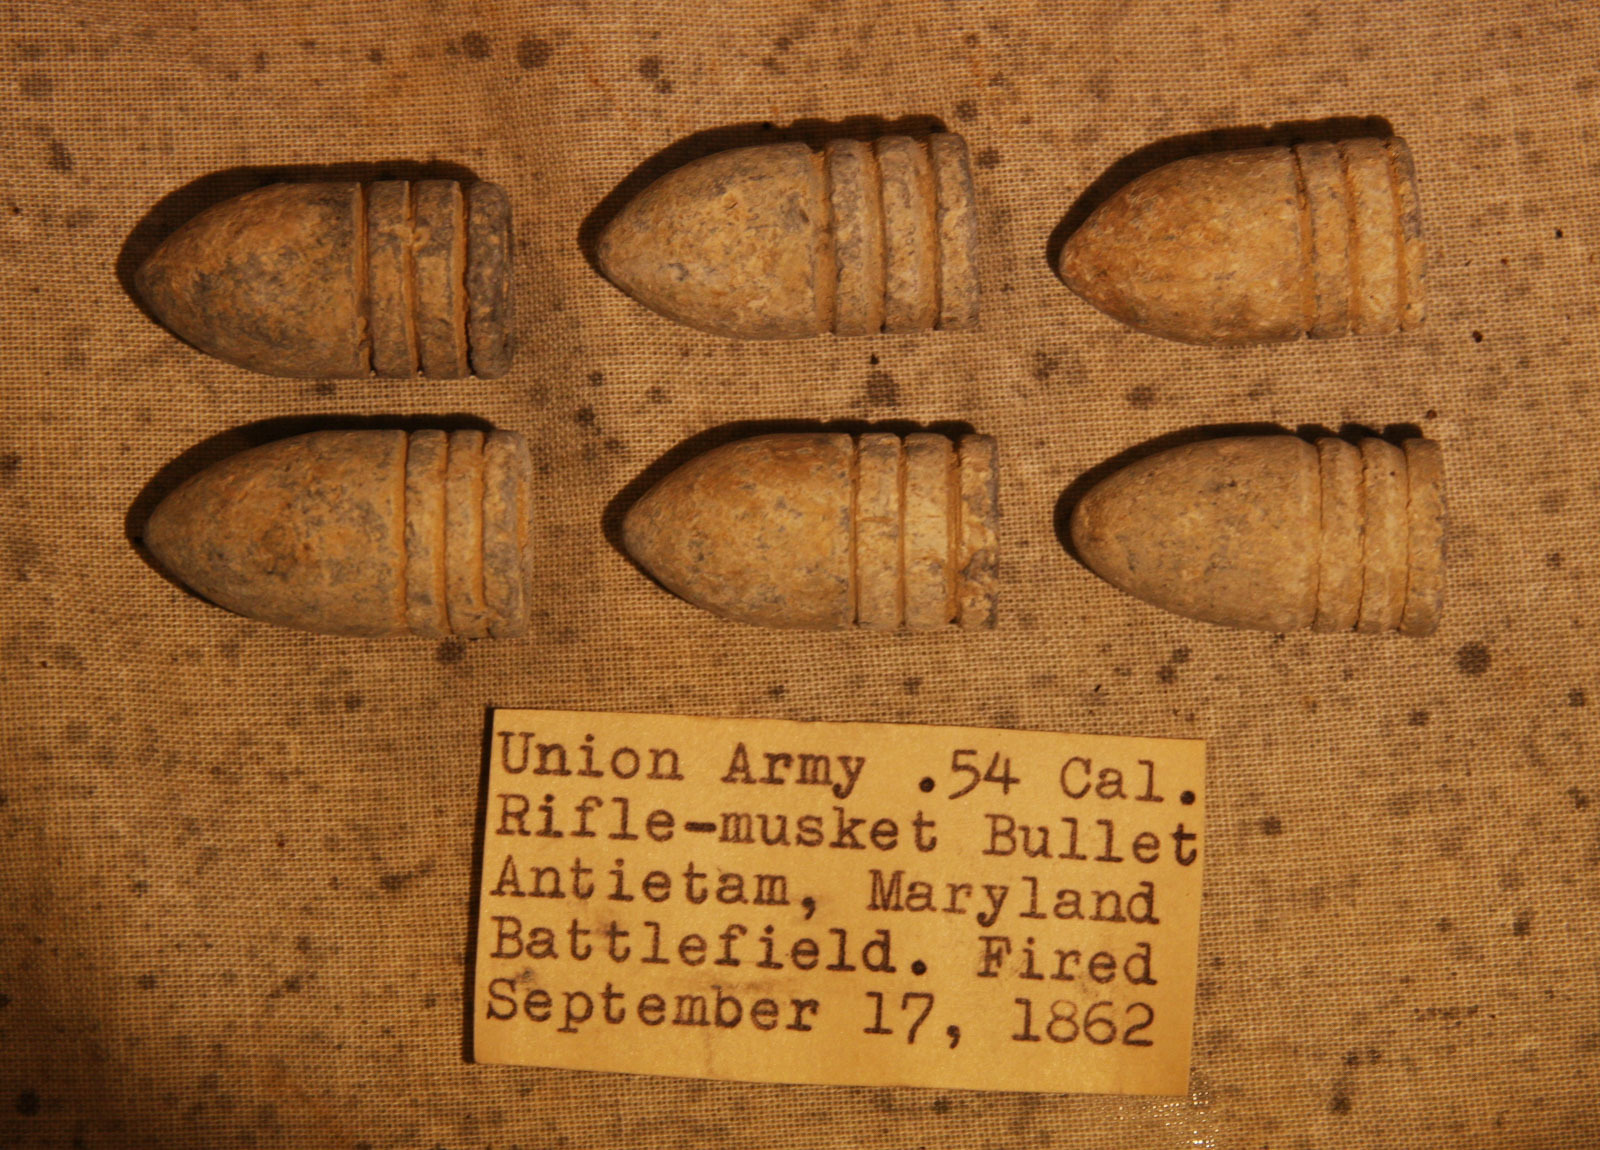 JUST ADDED ON 5/2 - THE BATTLE OF ANTIETAM - Six .58 Caliber Bullets including Four Rarer Machine Grooved with Original Collection Label RG-ANT107